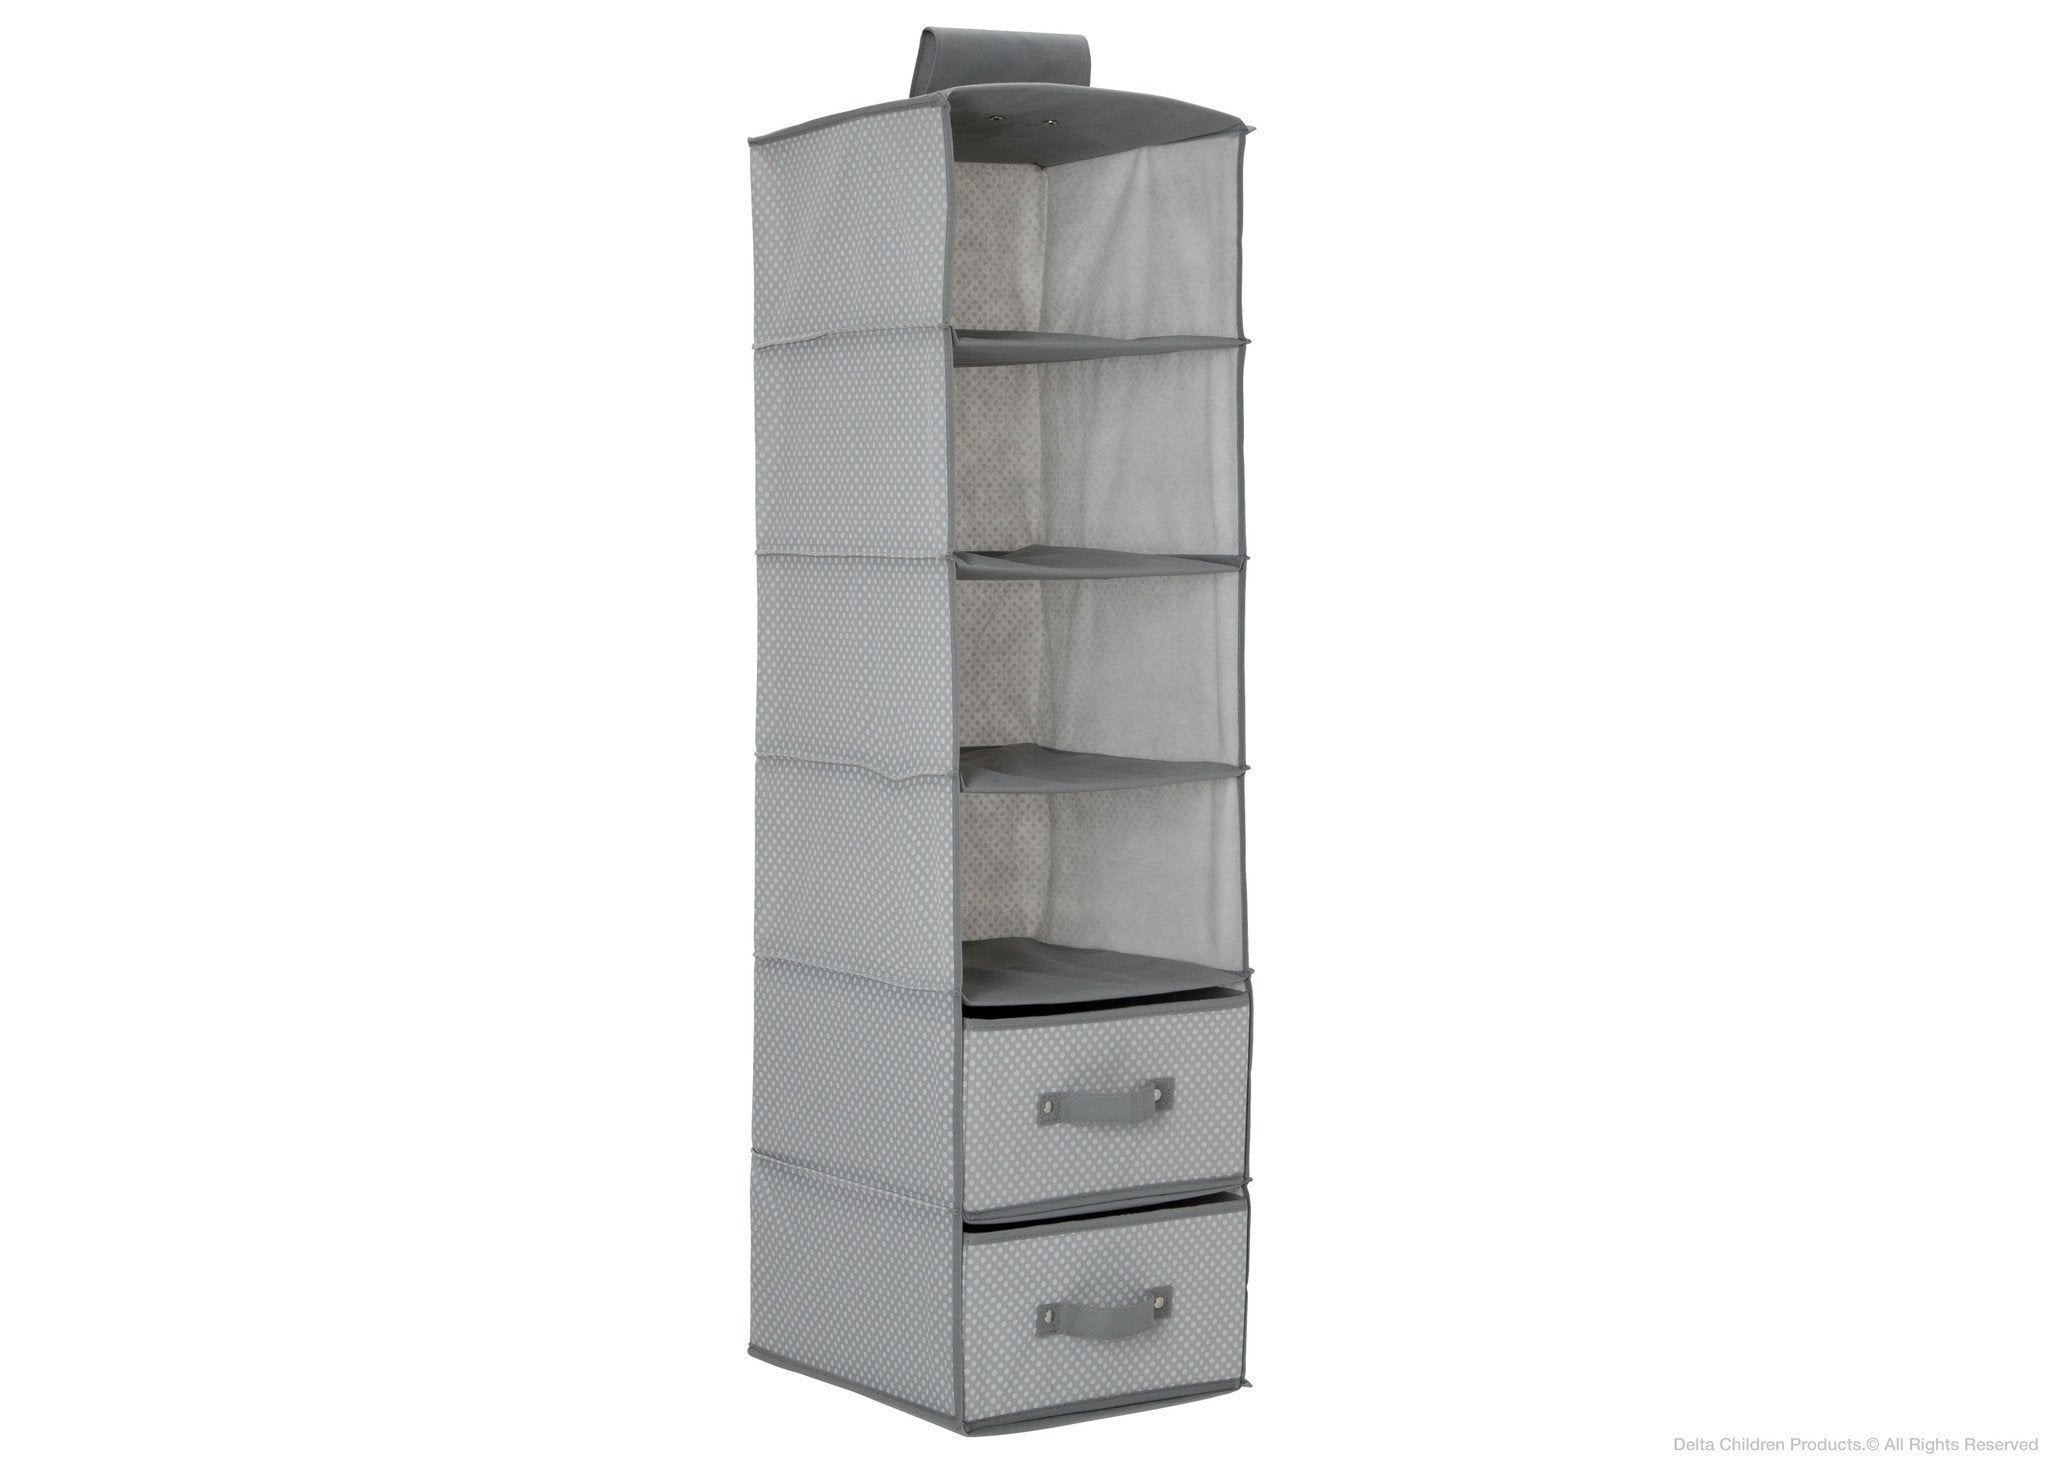 Delta Children Dove Grey (058) 6 Shelf Storage with 2 Drawers, Drawer Option a1a